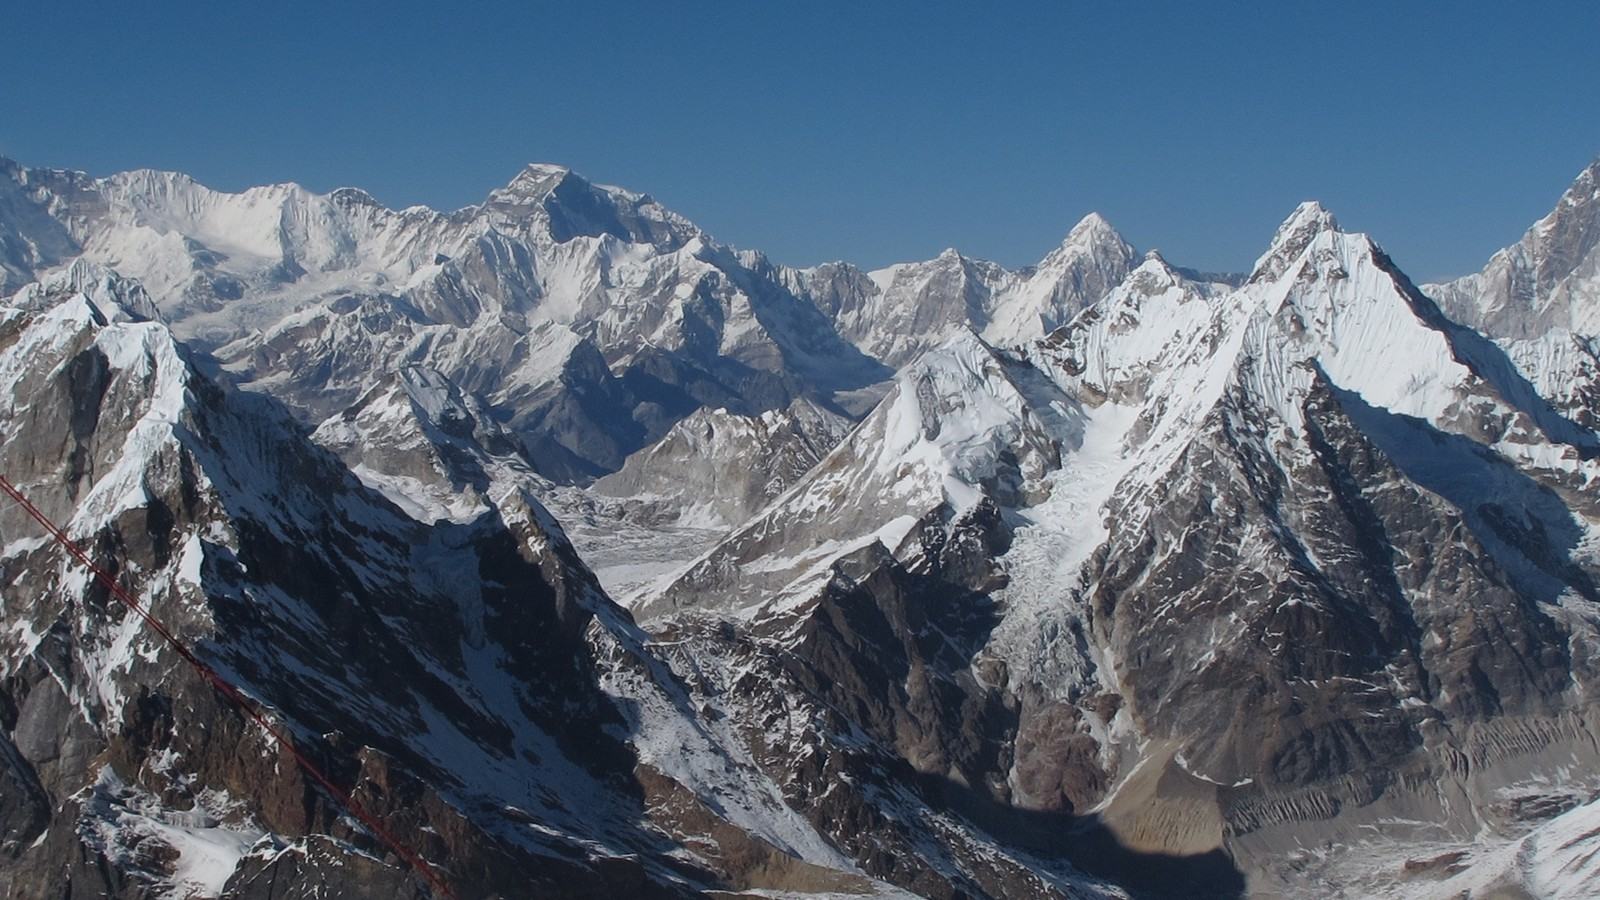 This Simulation Found Most Glaciers Near Mount Everest Could Be Gone By 2100